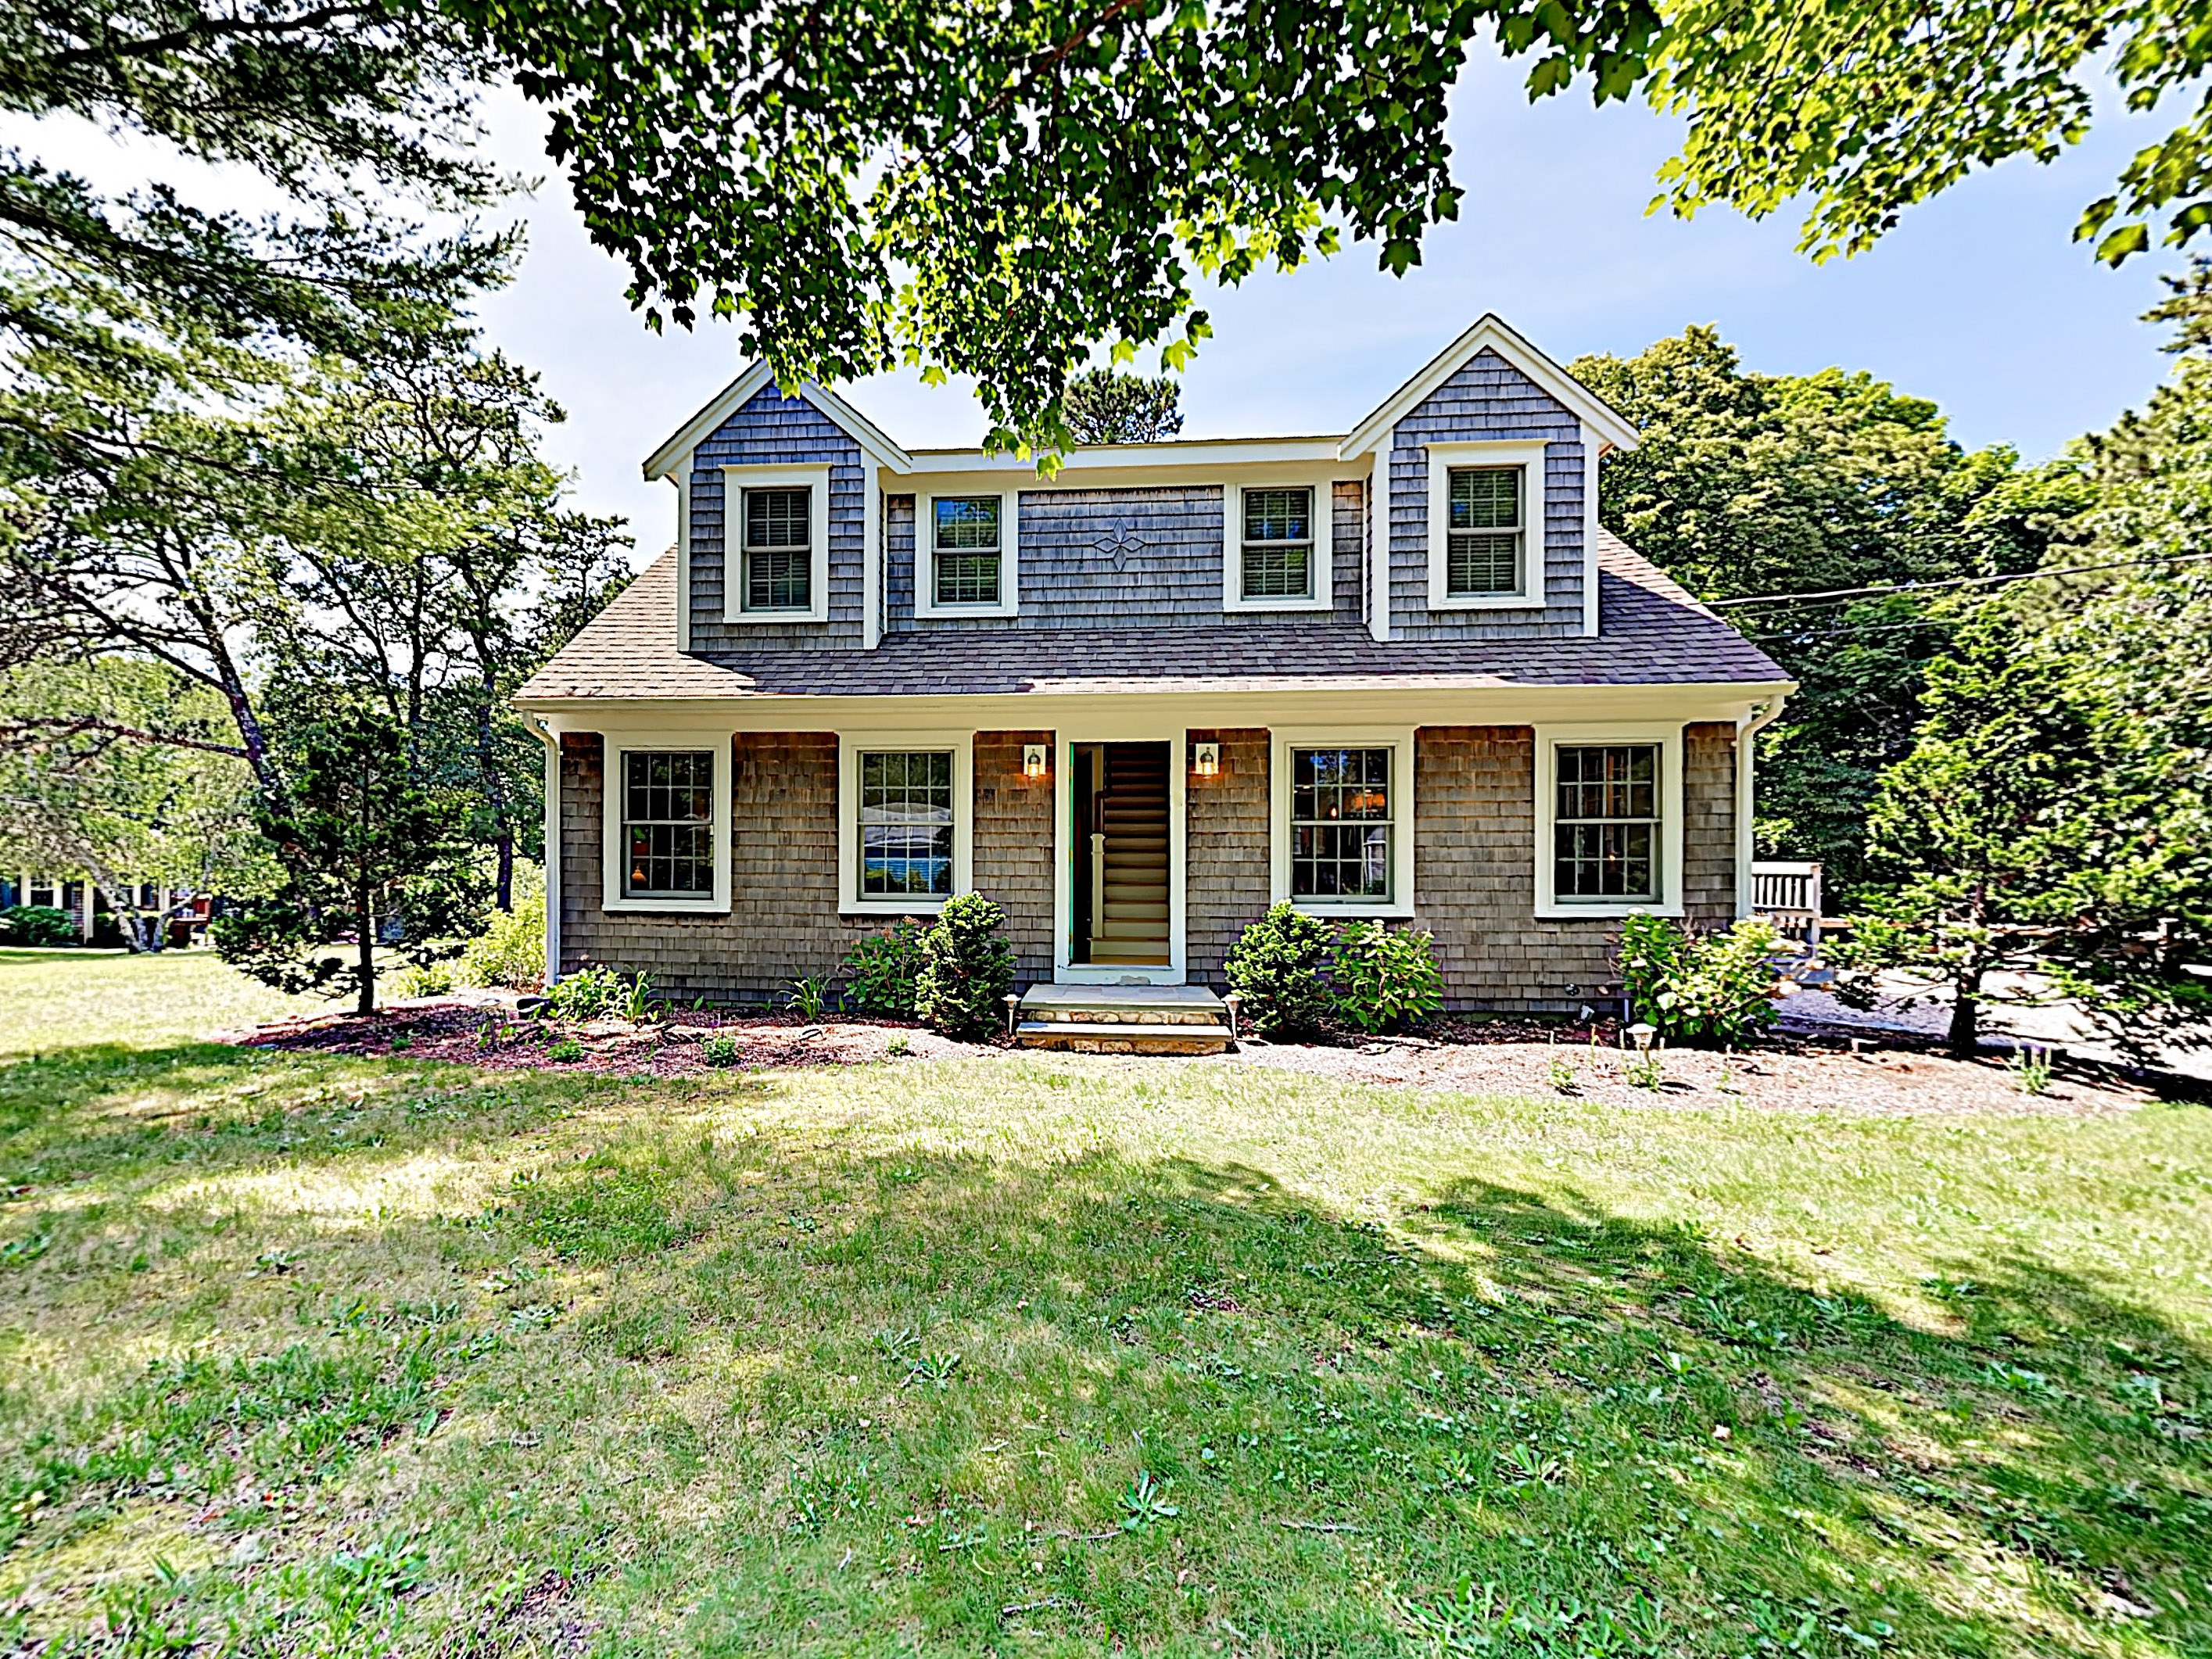 Harwich MA Vacation Rental Welcome to Cape